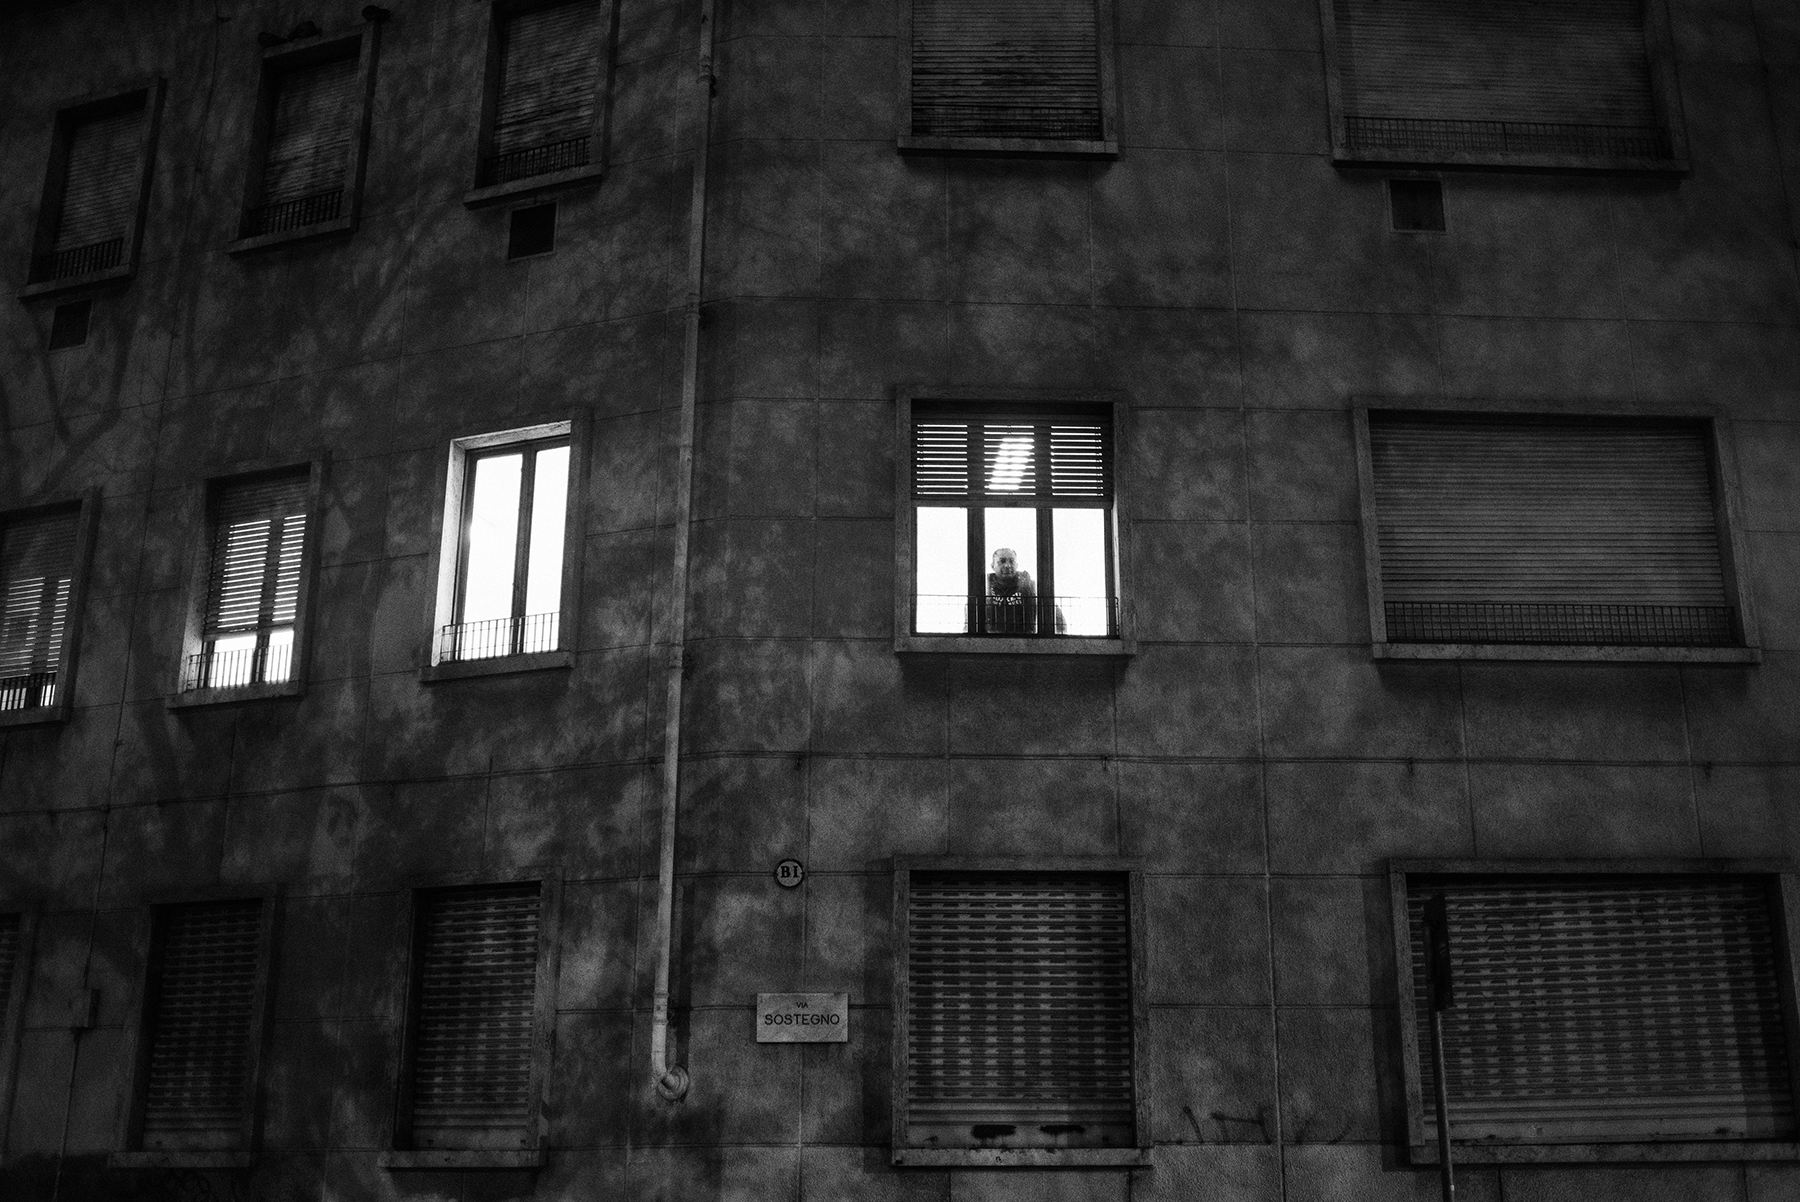 Gurpreet Dhindsa (38) looks out the window from the Red Cross dormitory in Piazza Massaua in Turin, Italy; December 2018.After being kicked out, Mr. Dhindsa passed the following nights on the waiting room of a near hospital and he is now forced to sleep in public dormitories, such as the one in Piazza Massaua, and use public showers.